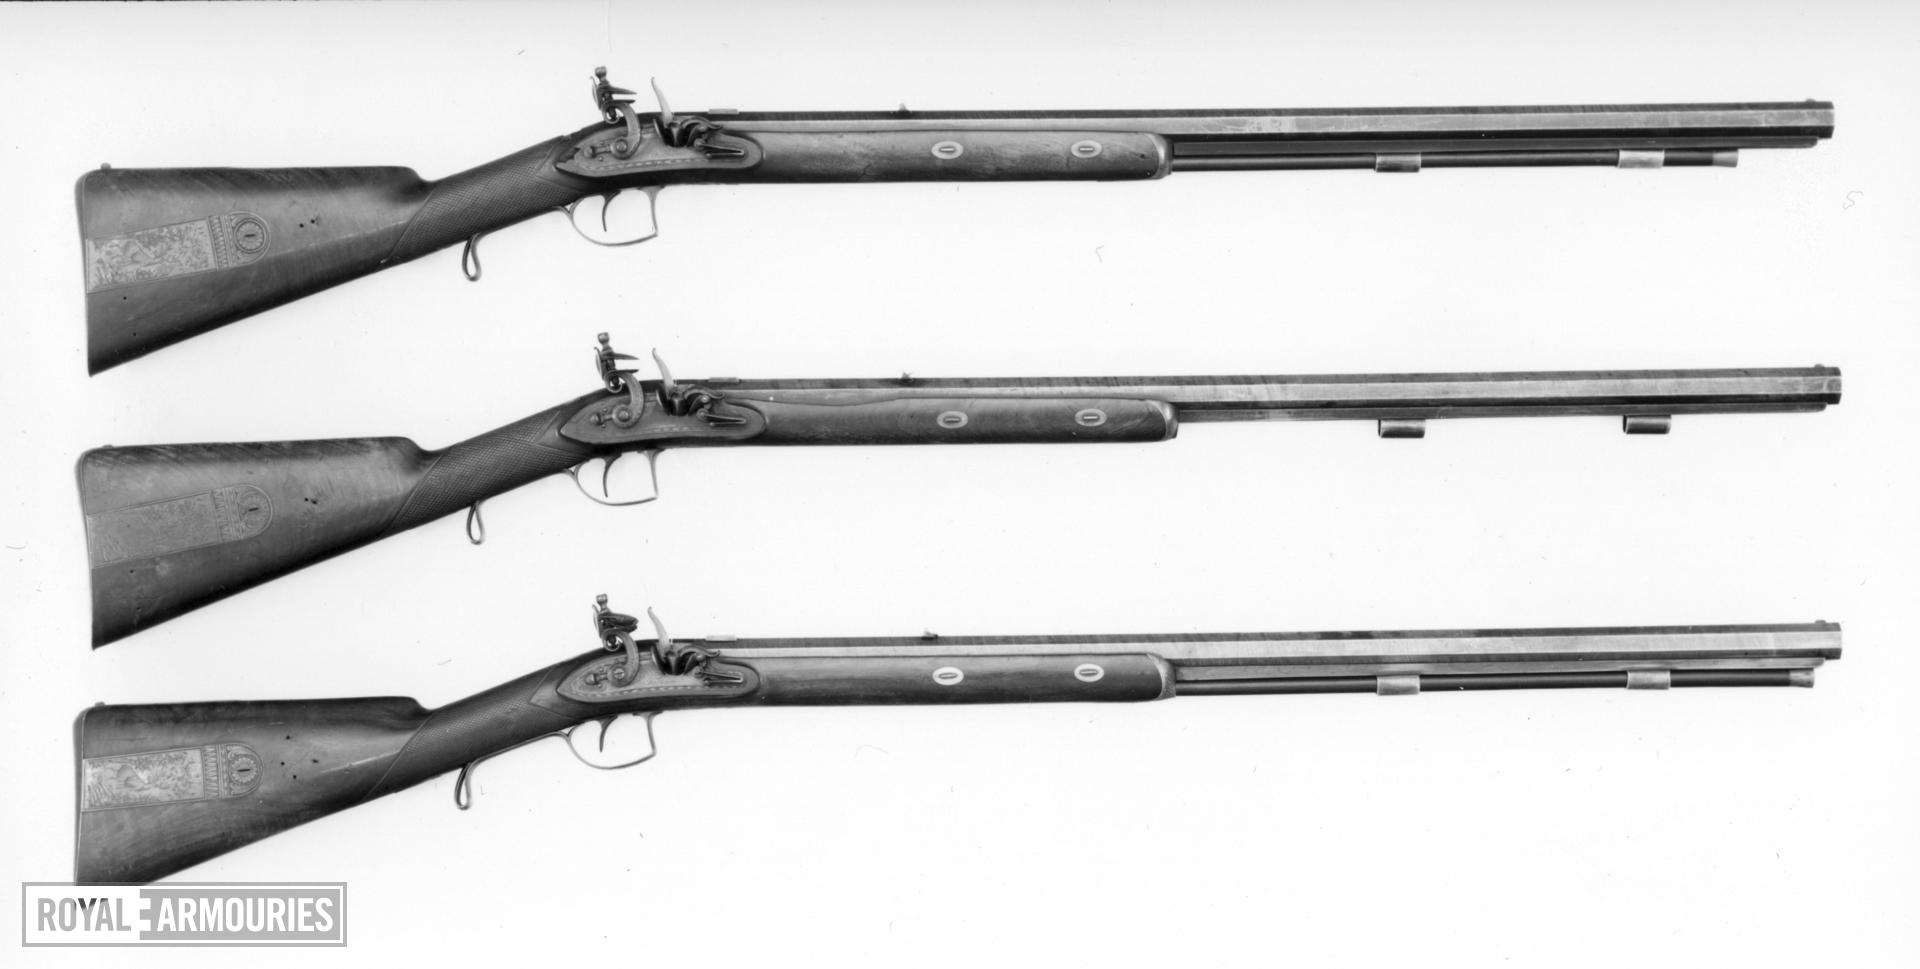 Flintlock muzzle-loading presentation rifle - By Tatham Part of a set of rifles made as official government gifts.